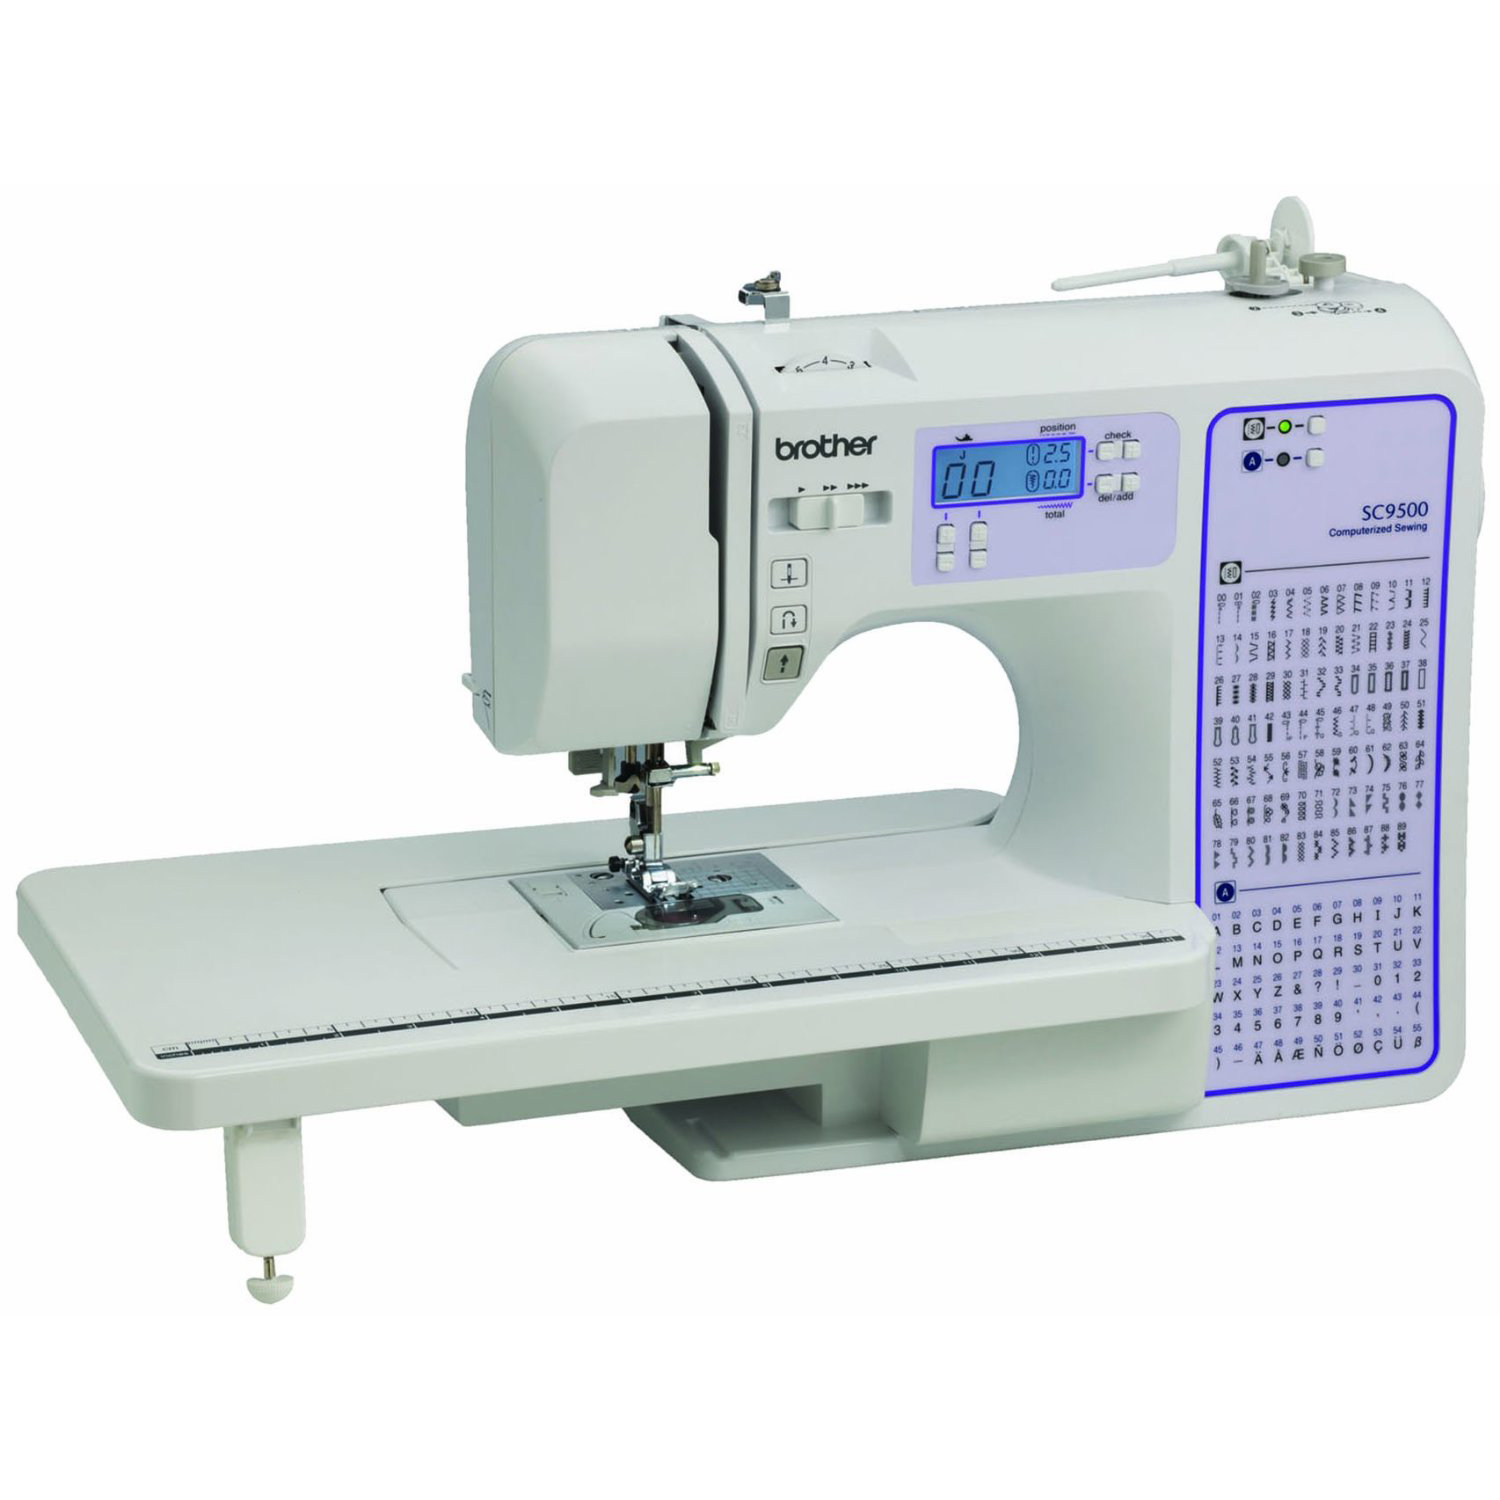 brother xr9500prw vs brother sc9500 two great brother sewing machine models to consider. Black Bedroom Furniture Sets. Home Design Ideas